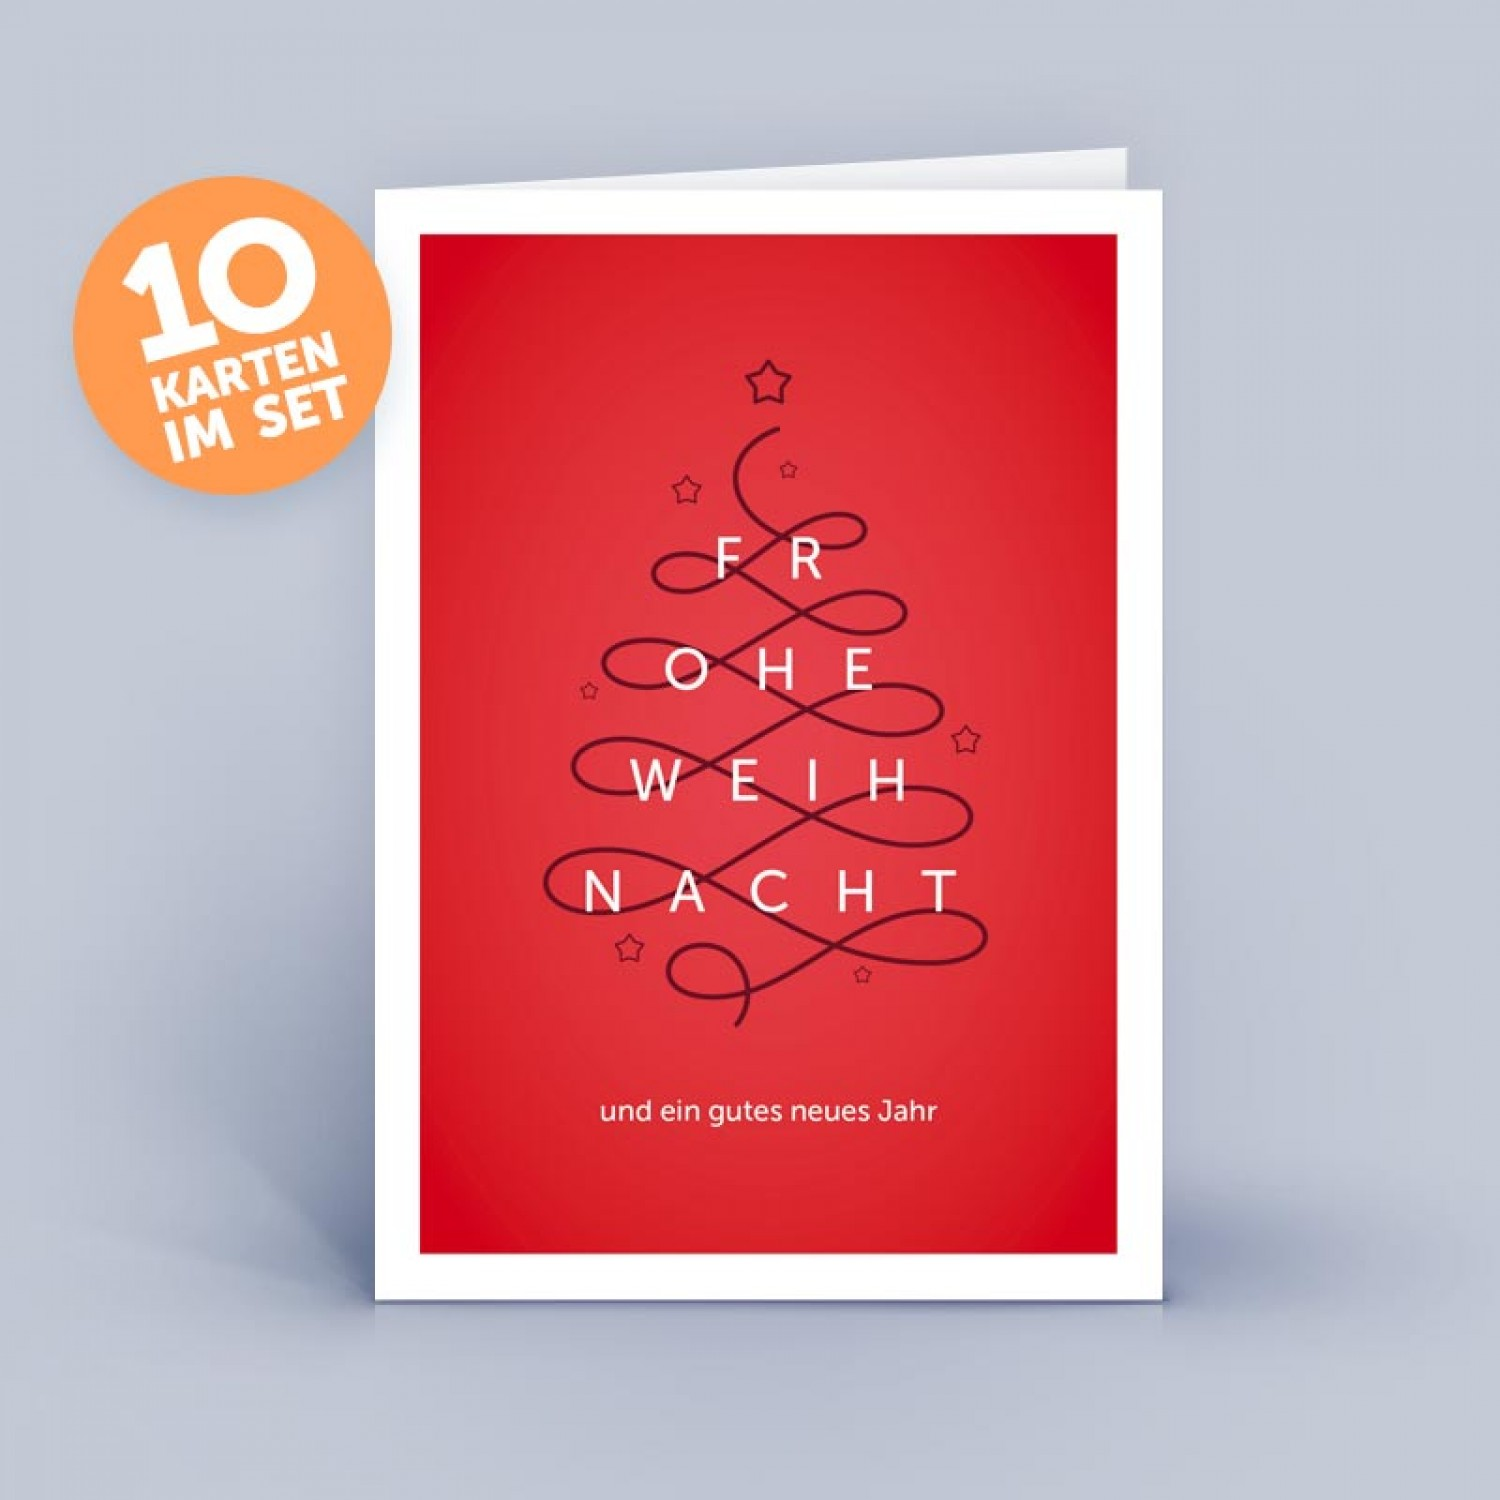 Weihnachtskarten Neutral.Christmas Card Red Christmas Tree Abstract And Noble Set Of 10 German